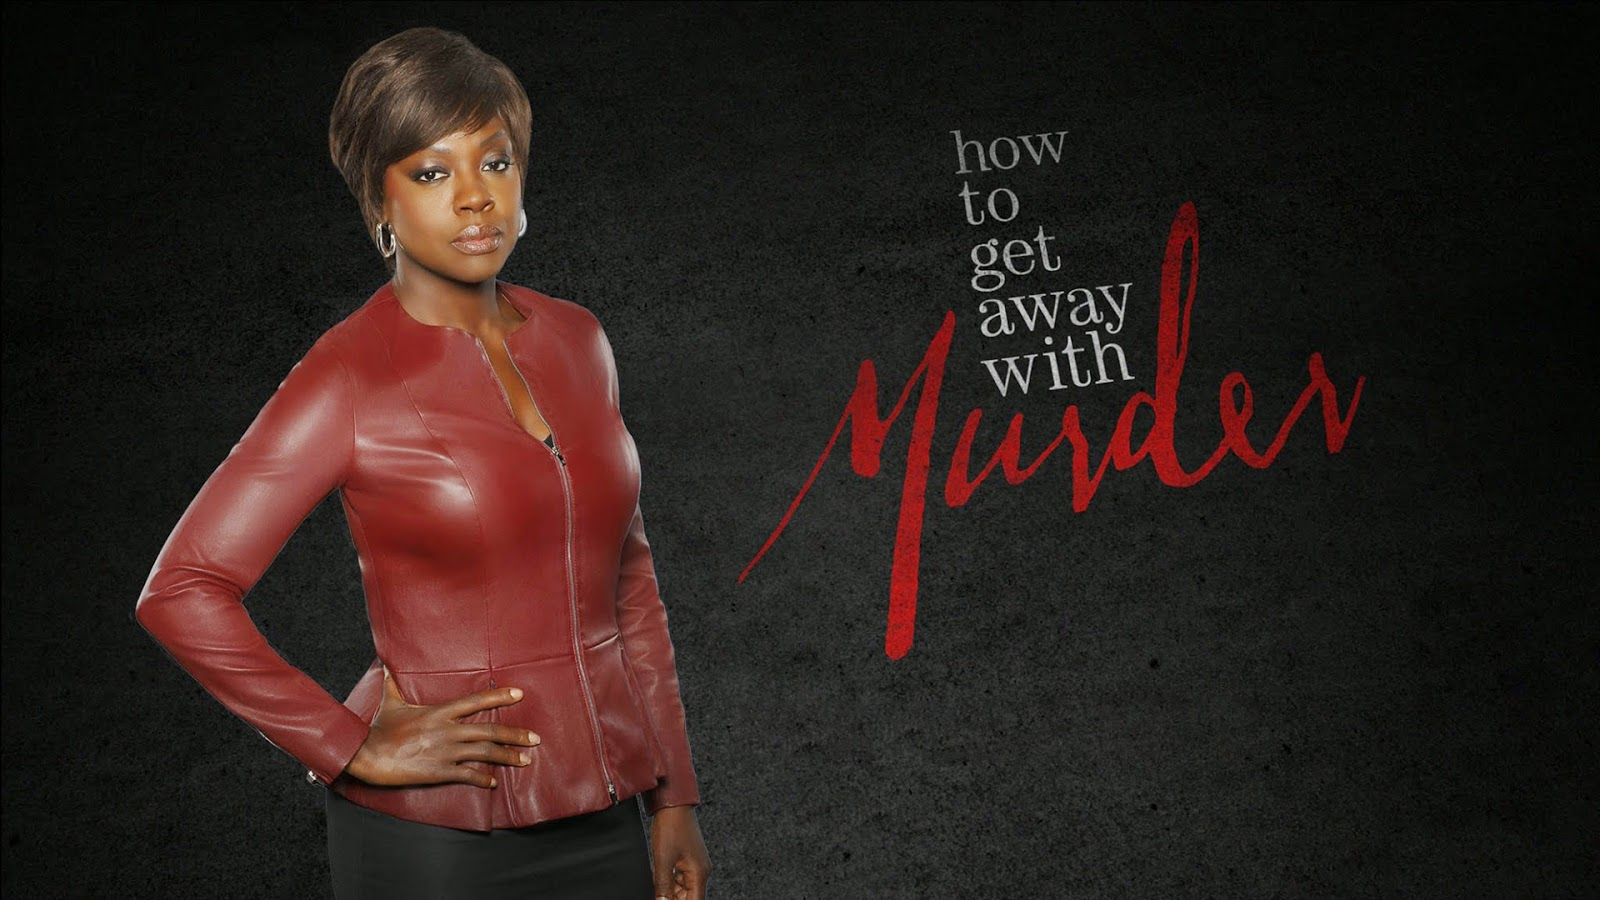 femfilmrogue: 'How to Get Away With Murder' Losing Its ...